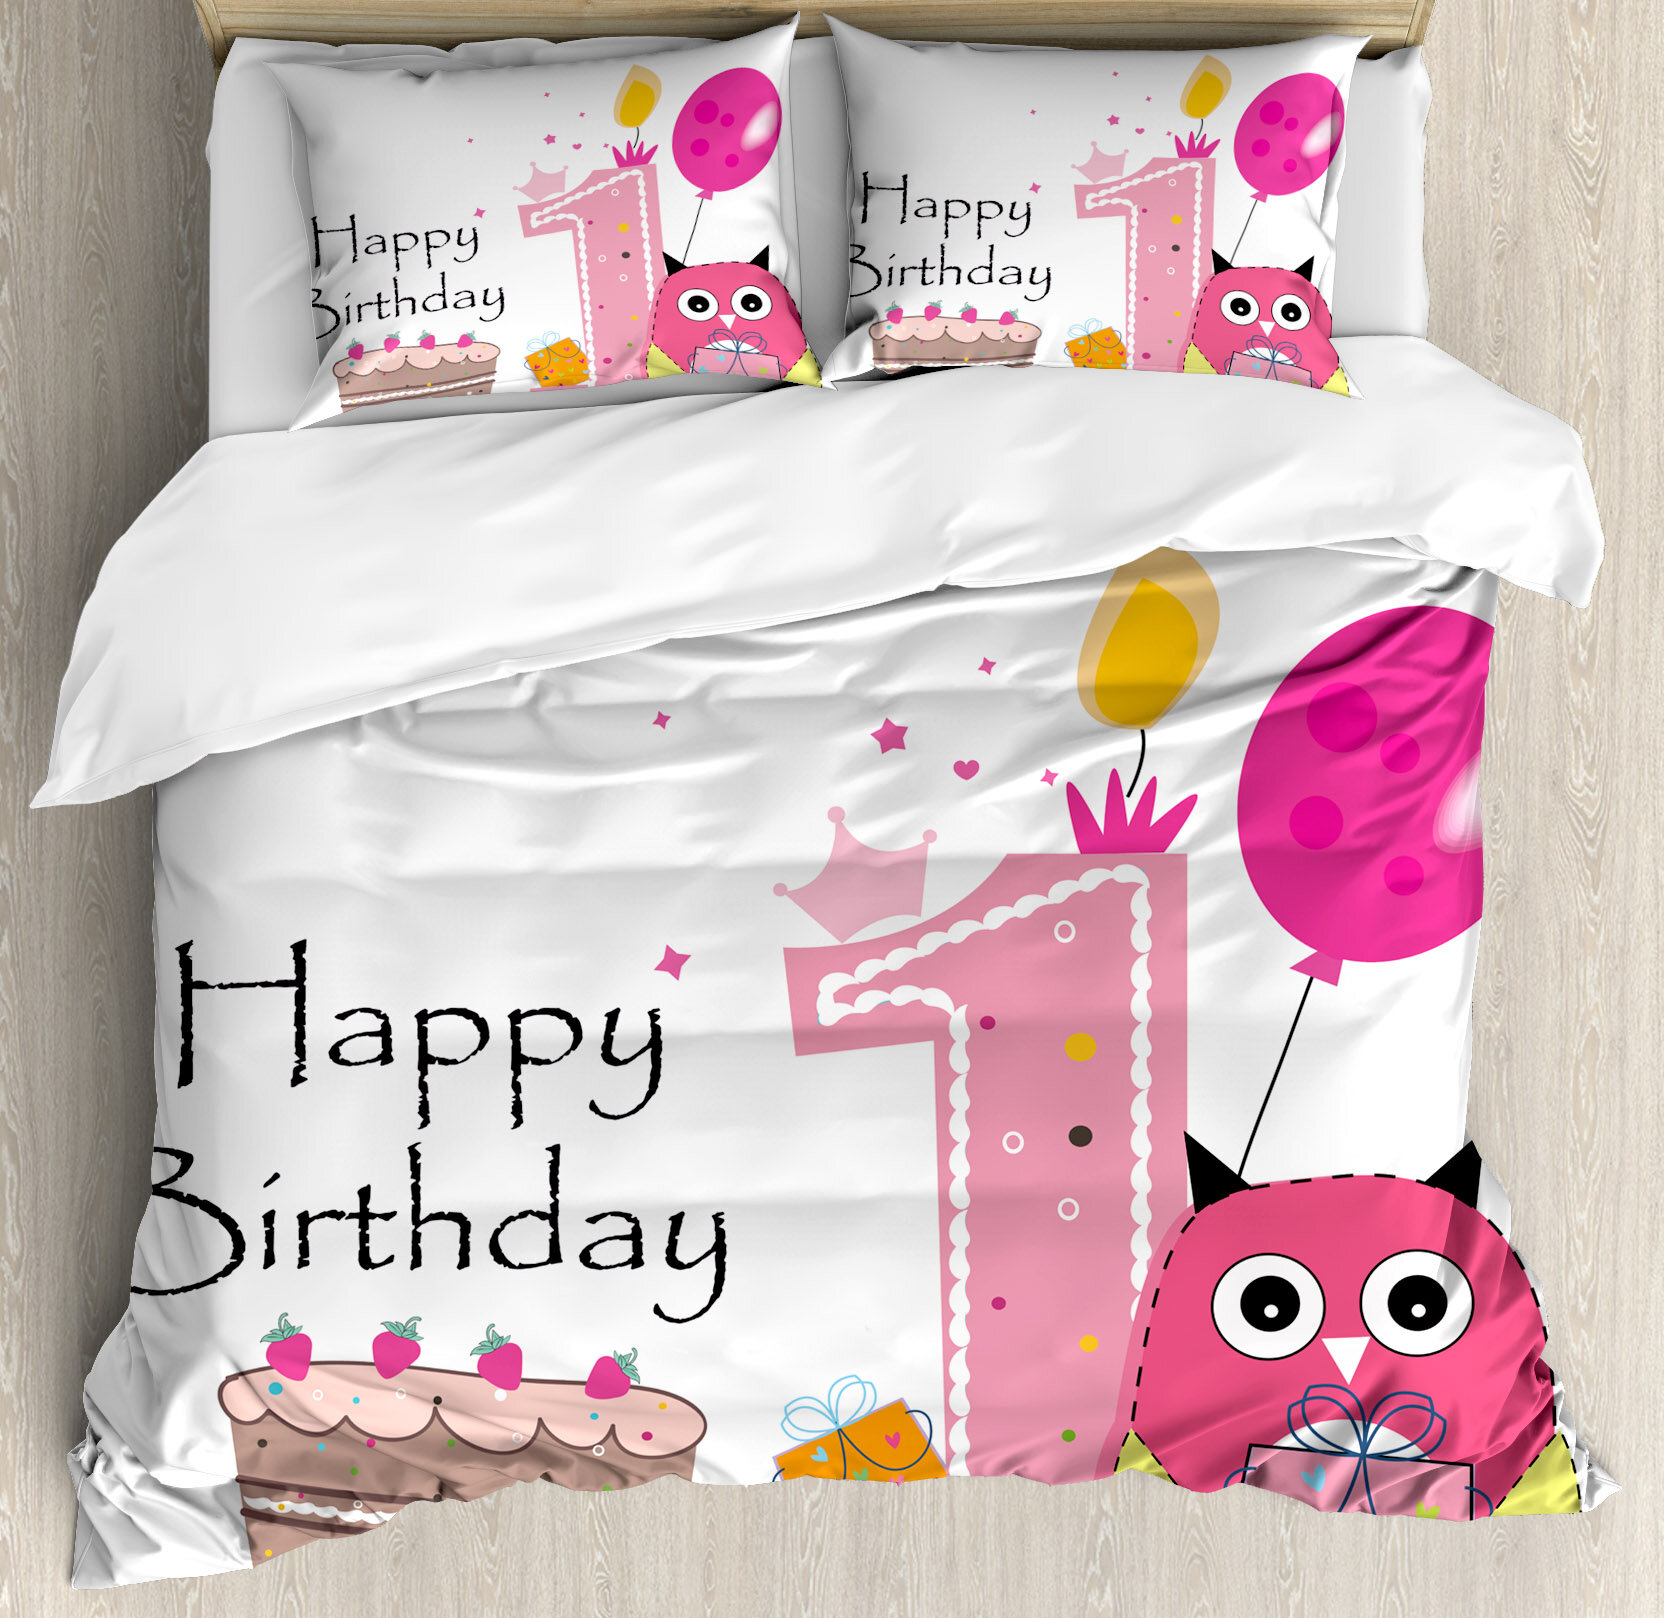 Ambesonne 1st Birthday Decorations First Cake Candle Sketchy Cartoon Owl Image Duvet Cover Set